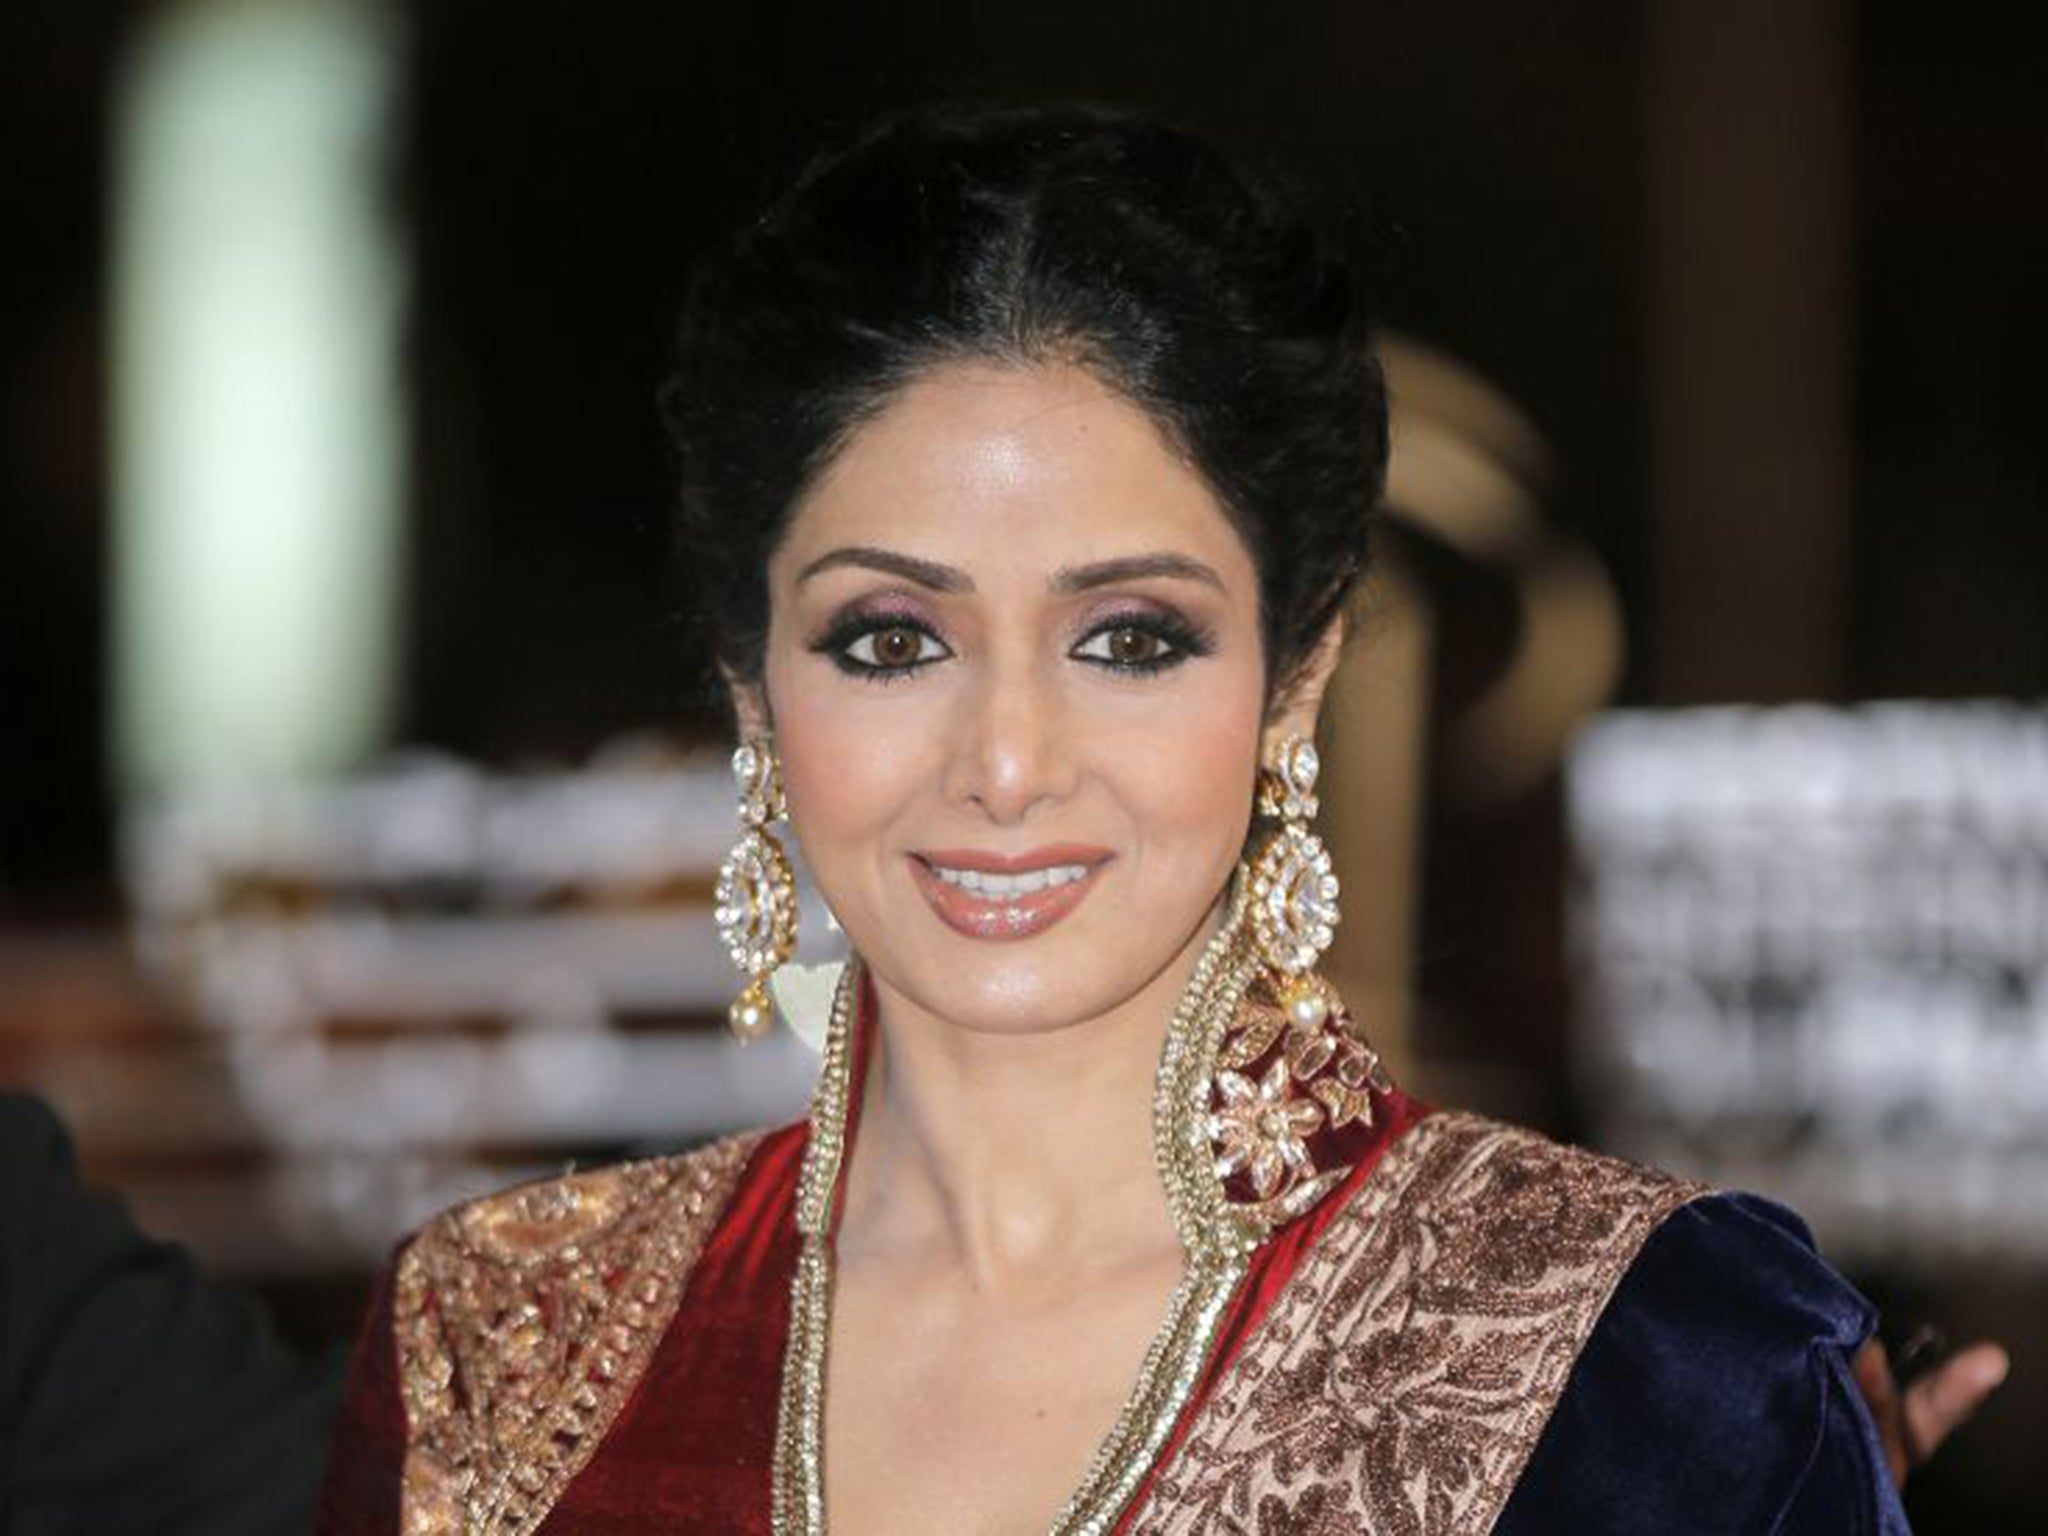 Sridevi: Indian media's reconstructions of Bollywood